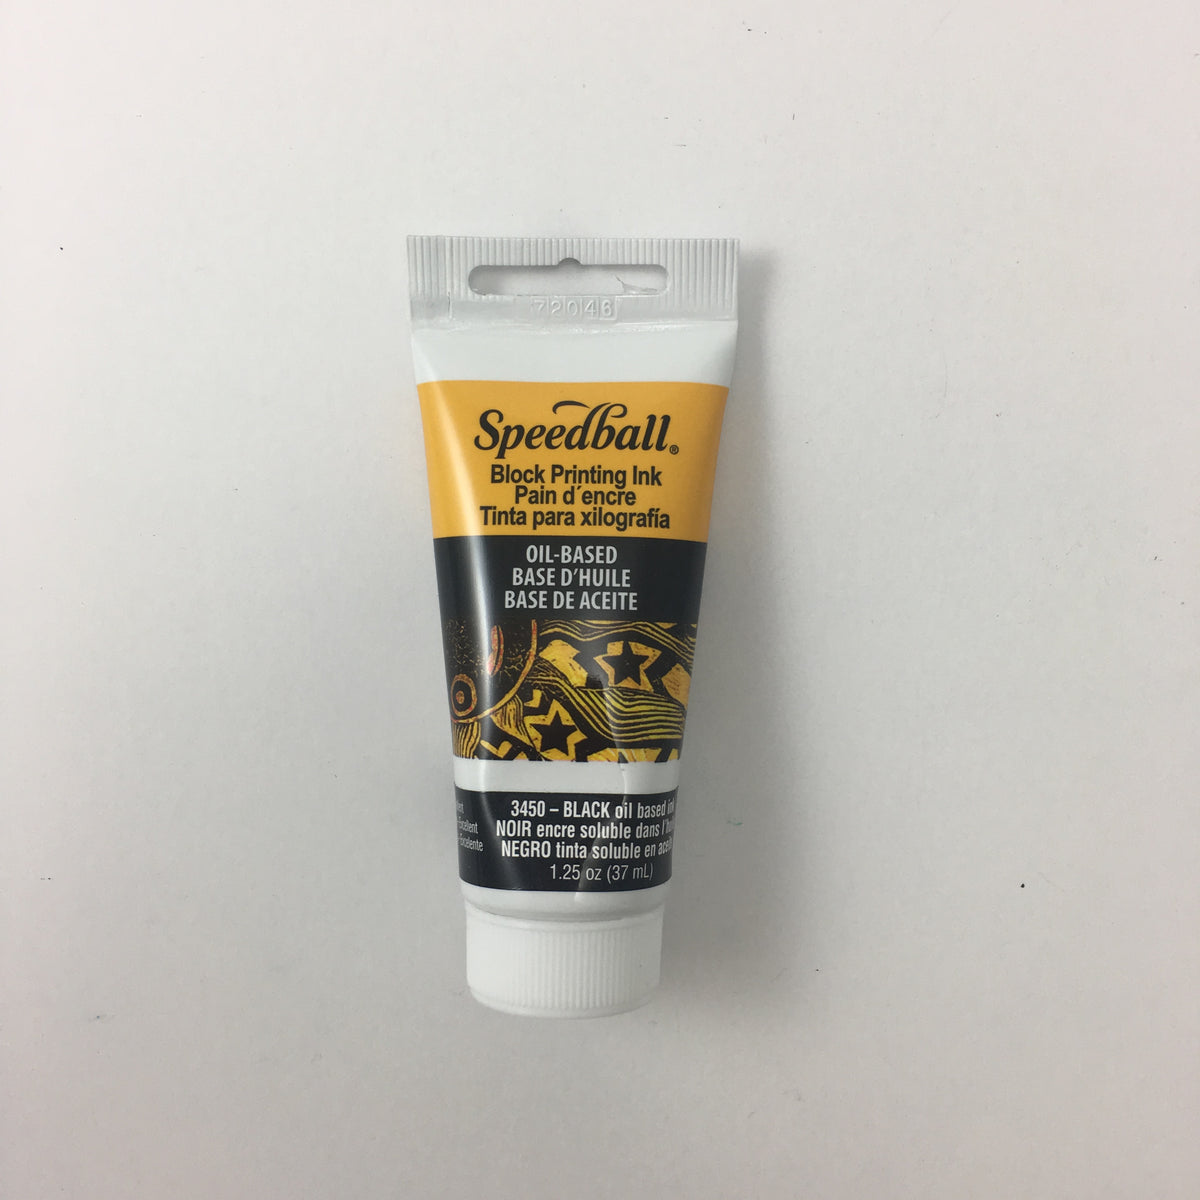 Speedball Block Printing Ink - Oil Based - 1.25 oz.